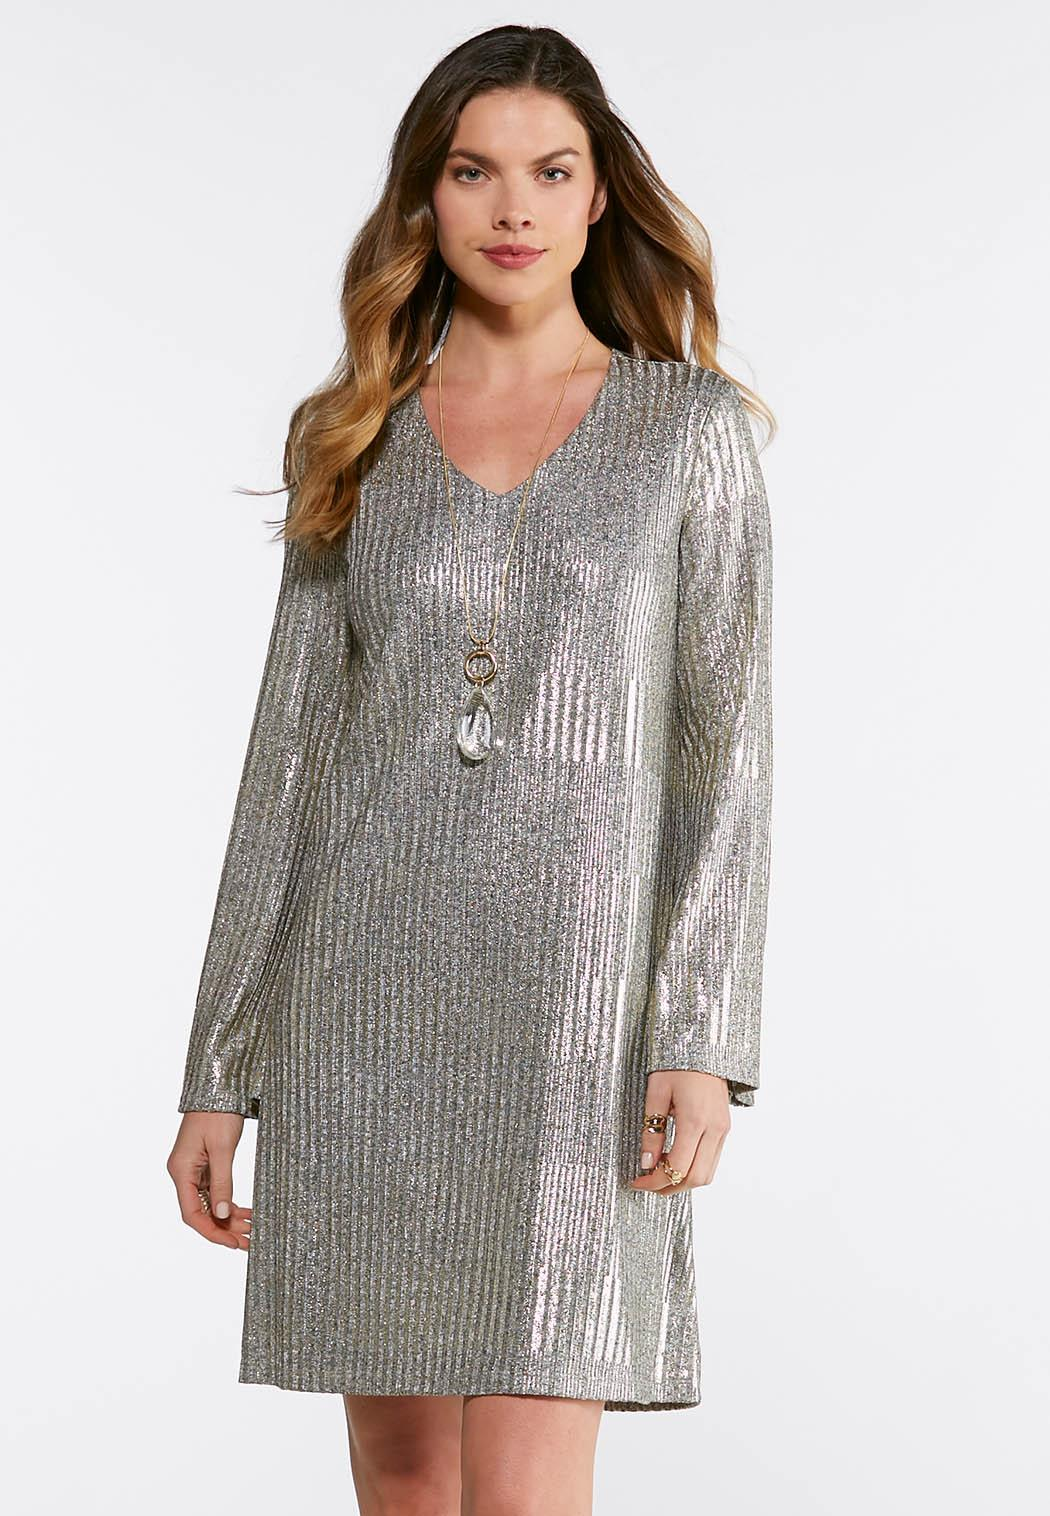 Plus Size Shimmery Gold Swing Dress A Line Swing Cato Fashions